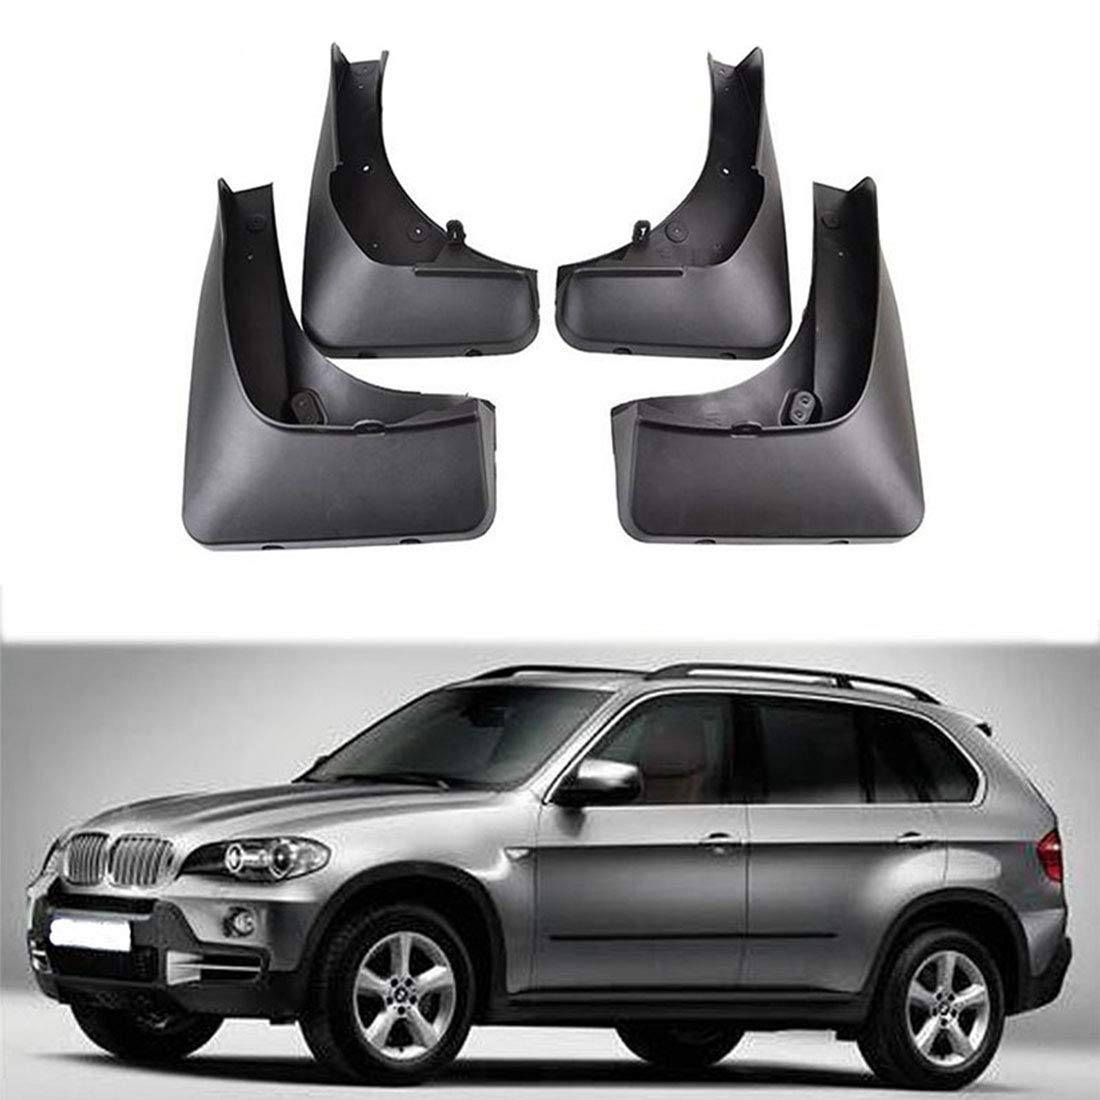 Richdoo For X5 E70 2007-2013 Front & Rear Splash Mud Guards Mud Guards Flaps NEW